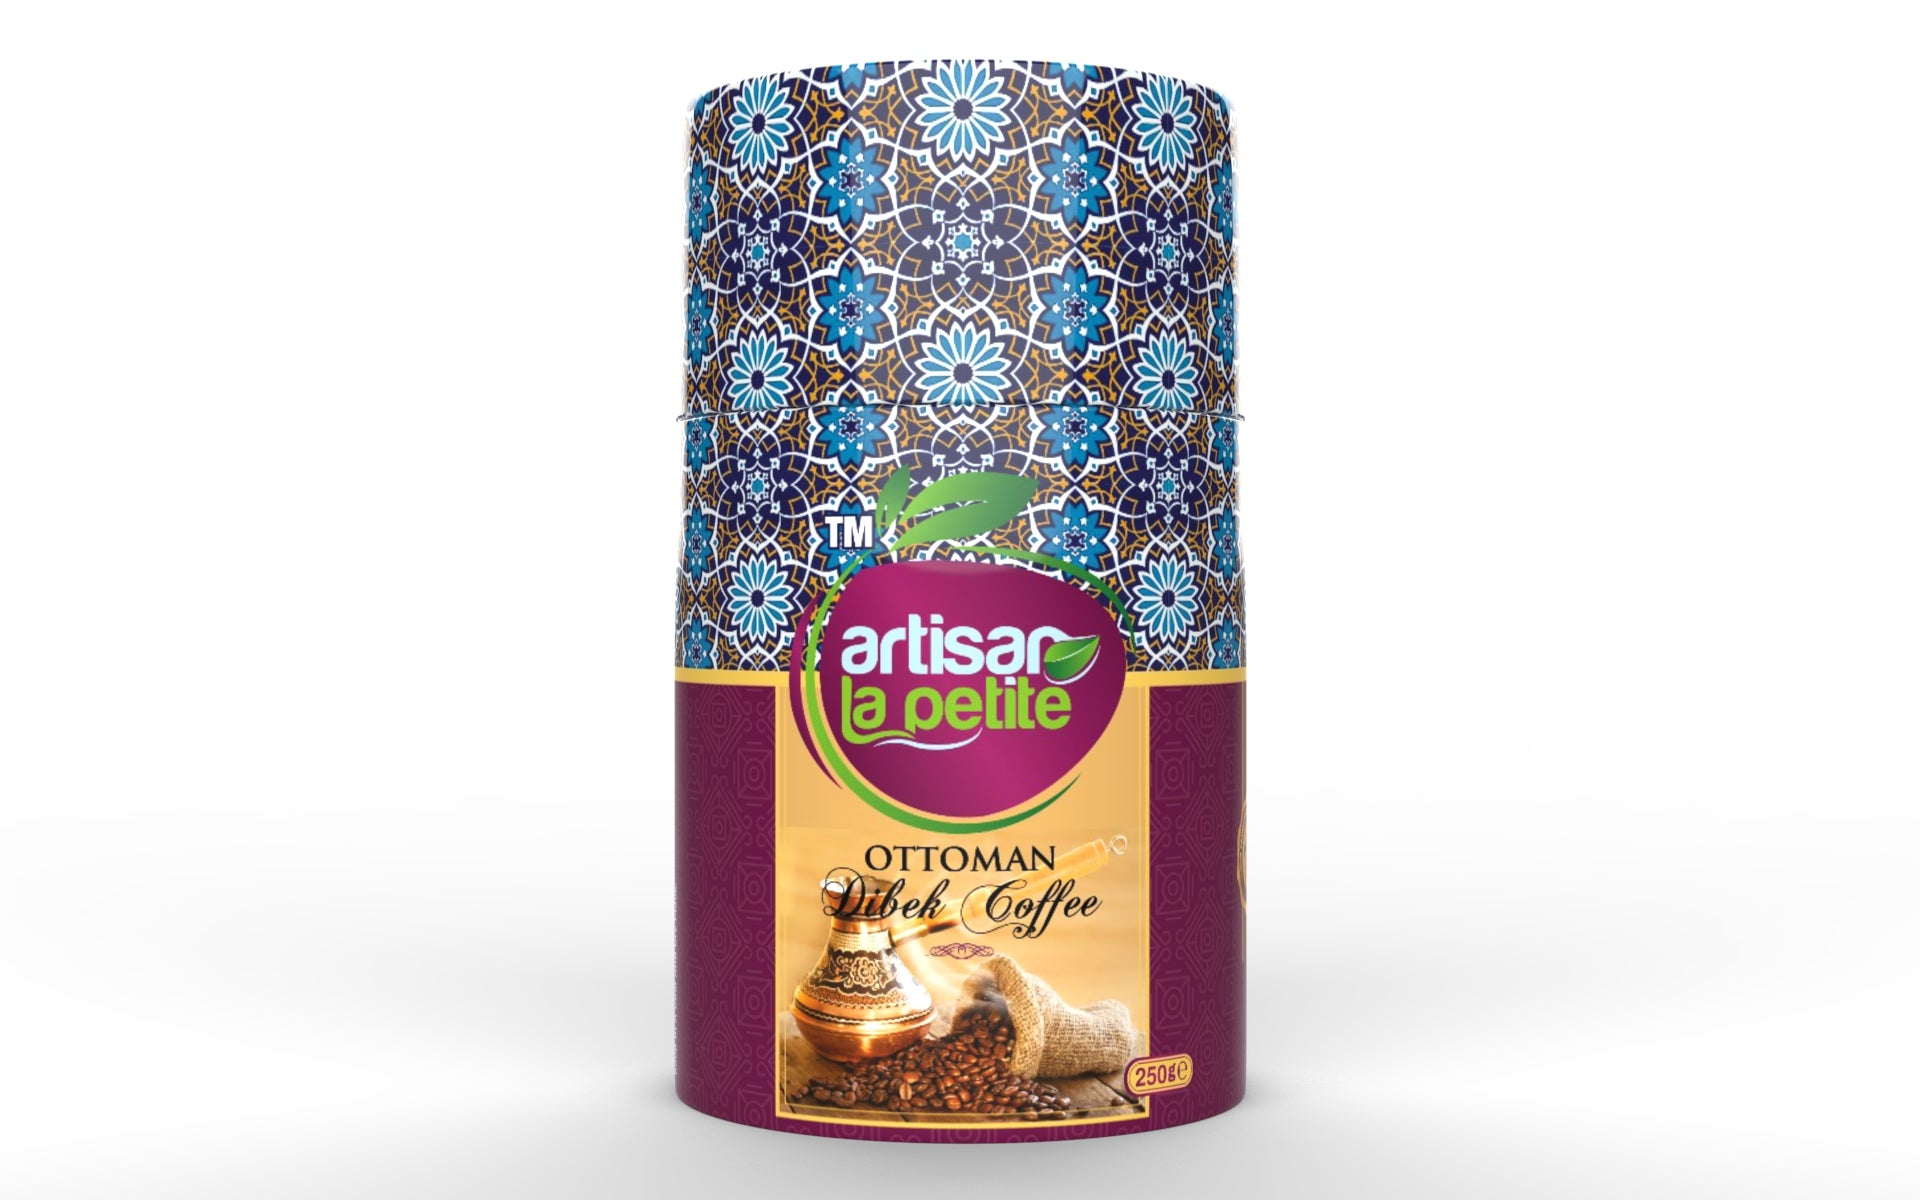 Ottoman Dibek Turkish  Coffee-Turk kahvesi 250g / 8.18 oz